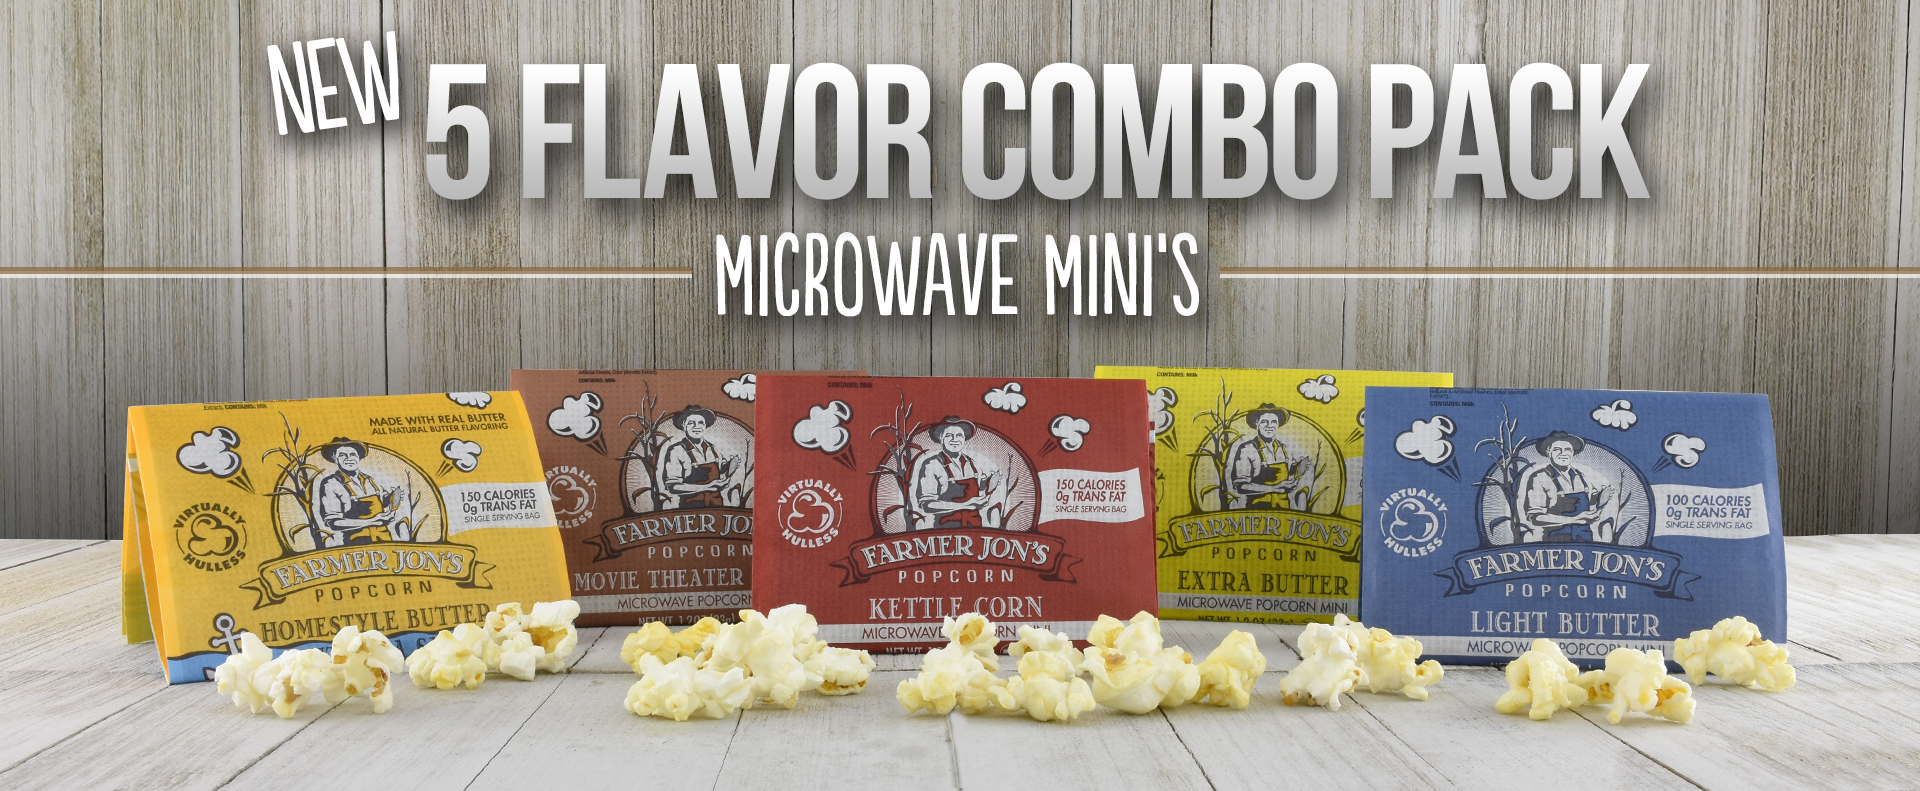 5-Flavor-Combo-Pack-Microwave-Minis